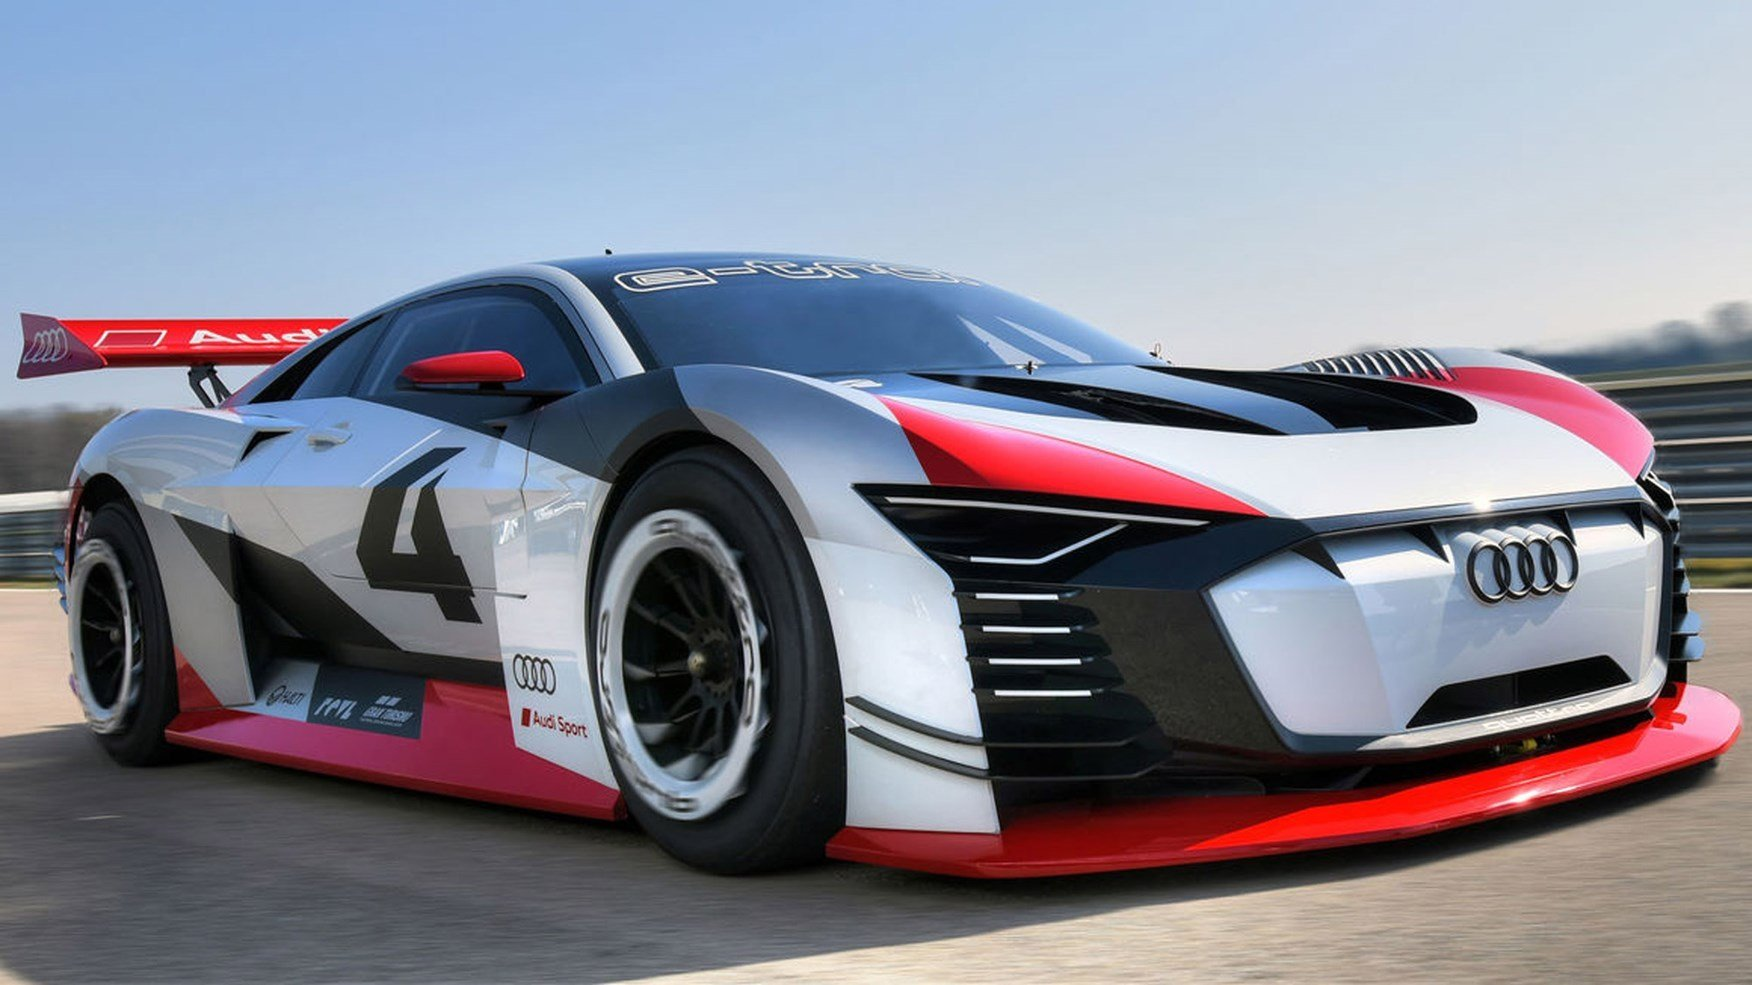 Latest Audi E Tron Vision Gran Turismo Virtual Concept To Real Free Download